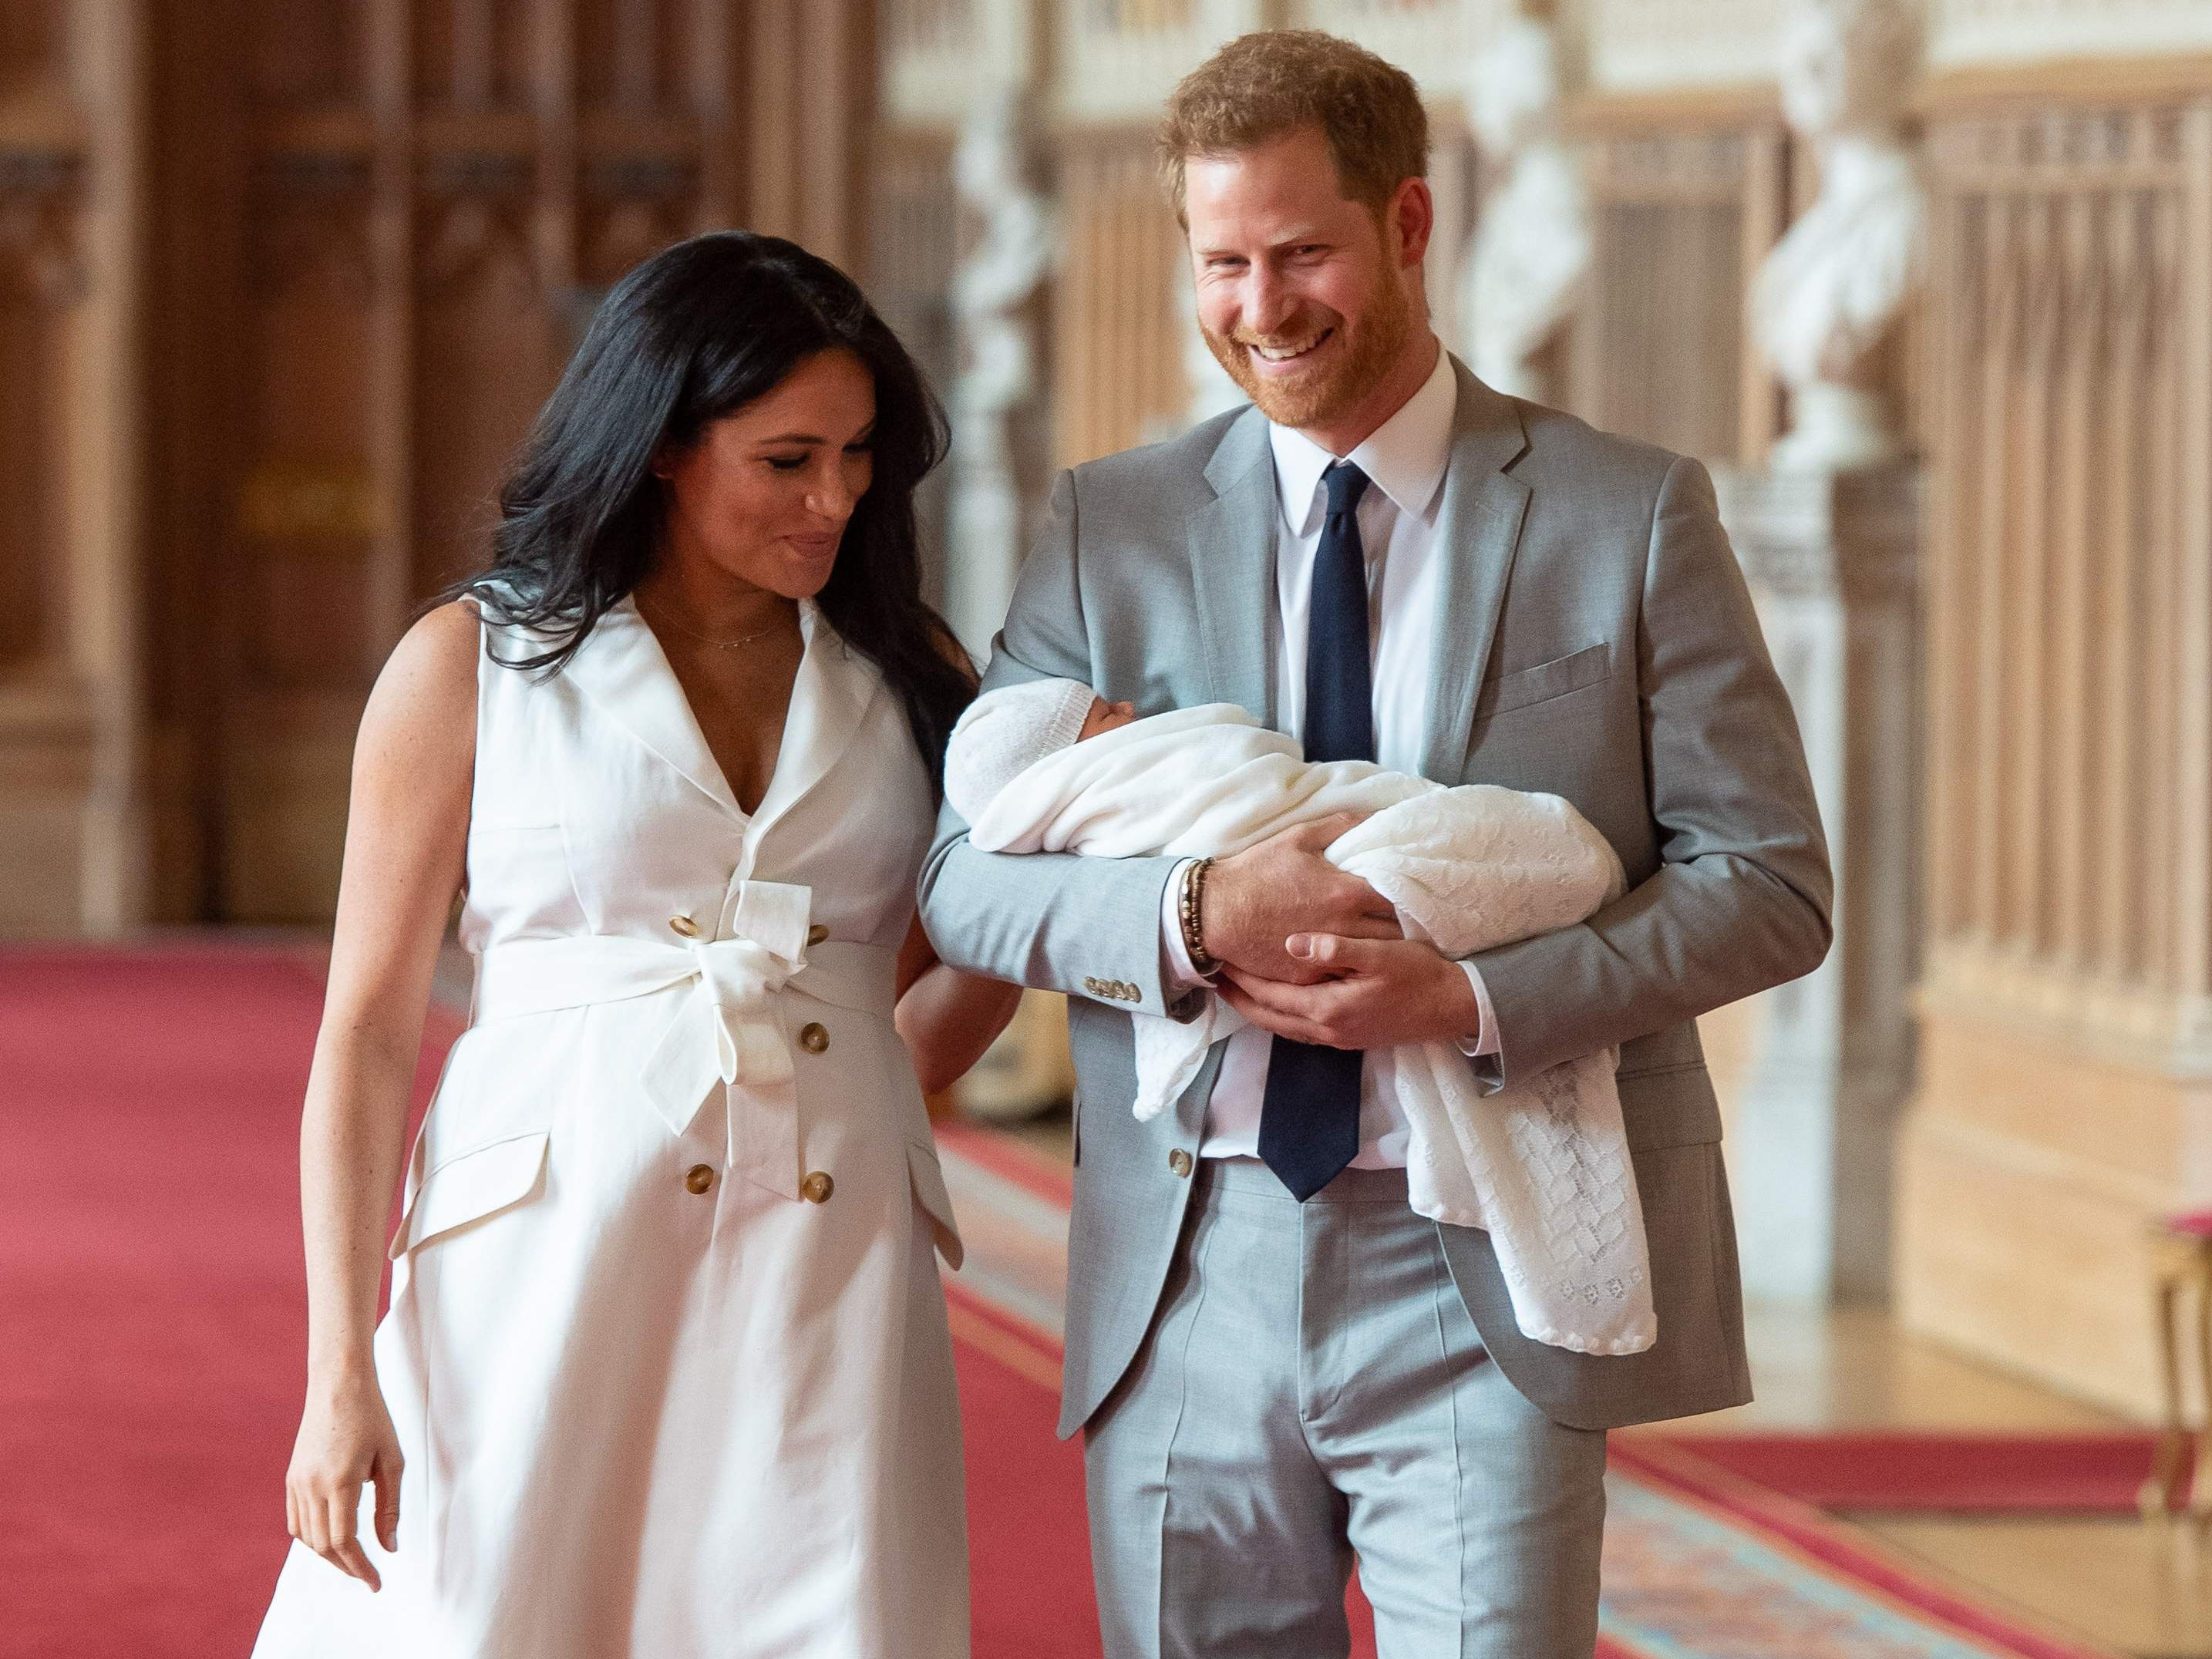 Britain's Prince Harry, Duke of Sussex (R), and his wife Meghan, Duchess of Sussex, pose for a photo with their newborn baby son in St George's Hall at Windsor Castle in Windsor, west of London on May 8, 2019. (Photo by Dominic Lipinski / POOL / AFP)DOMINIC LIPINSKI/AFP/Getty Images ORIG FILE ID: AFP_1GA08B